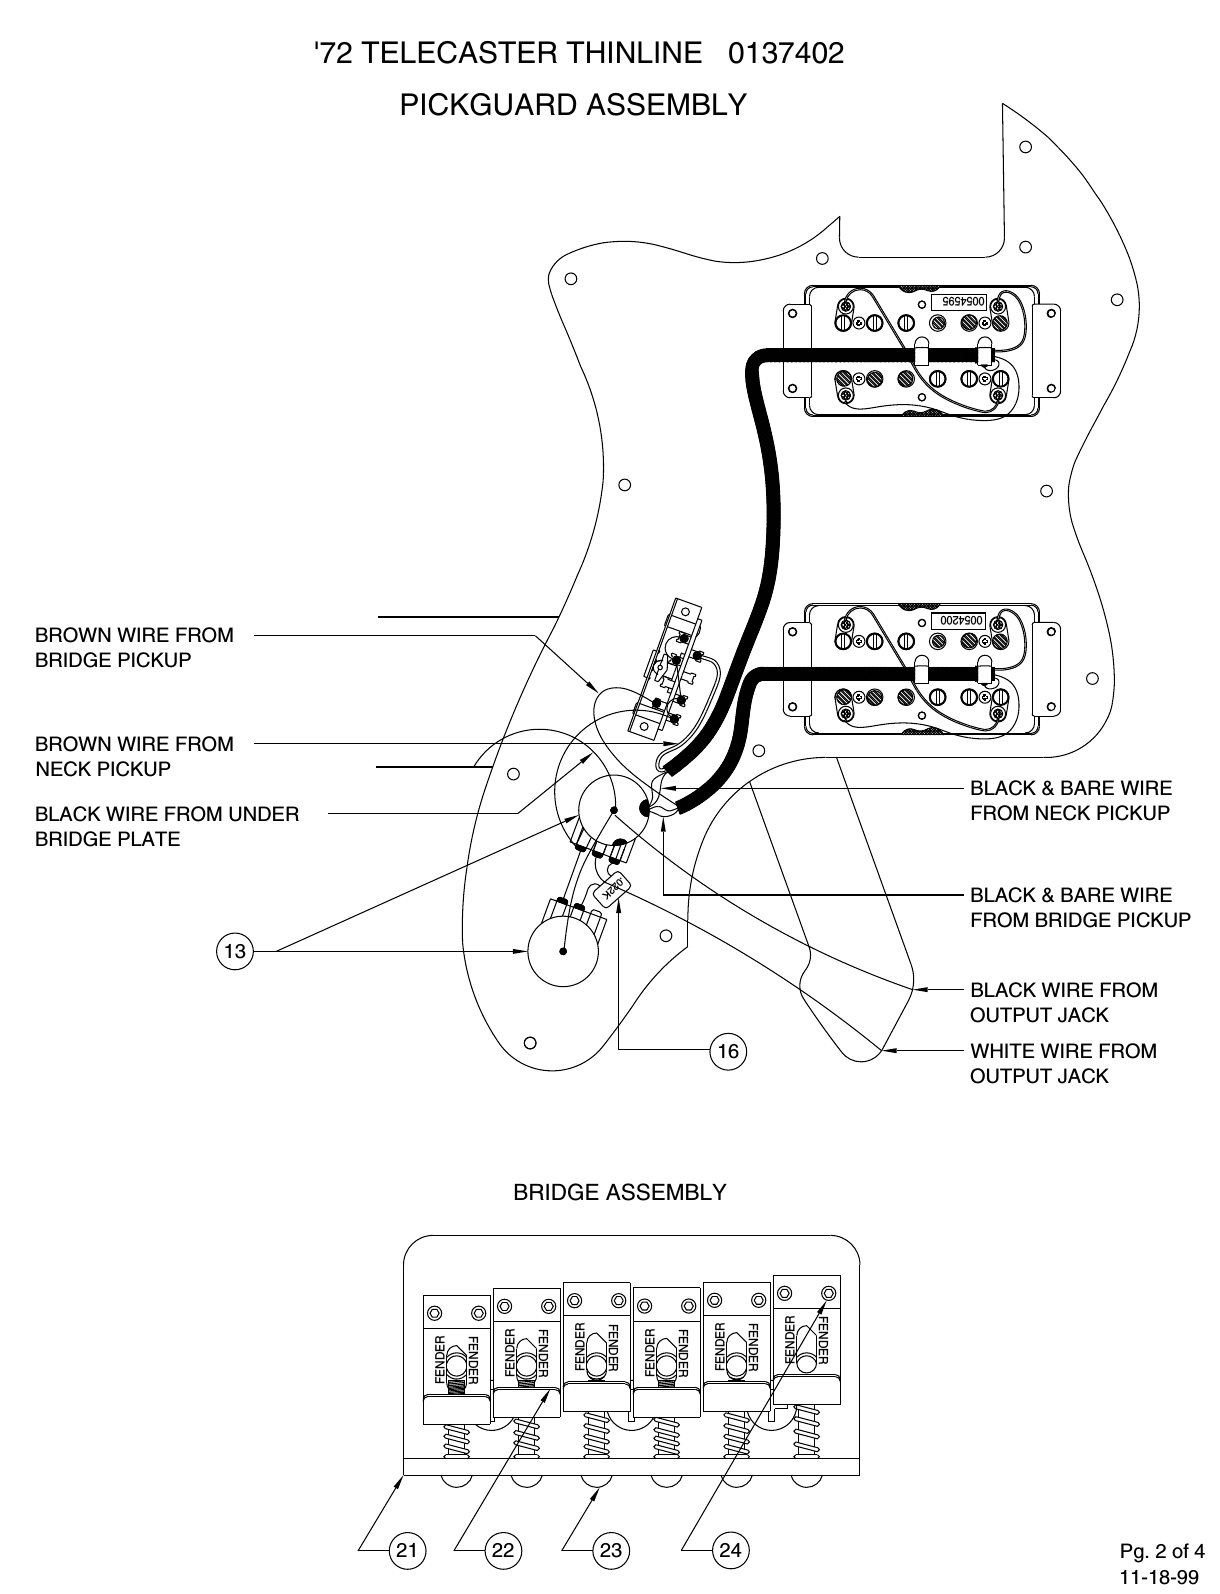 Fender 013 7402b Sisd Telecaster Thinline Wiring Diagram Page 2 Of 4